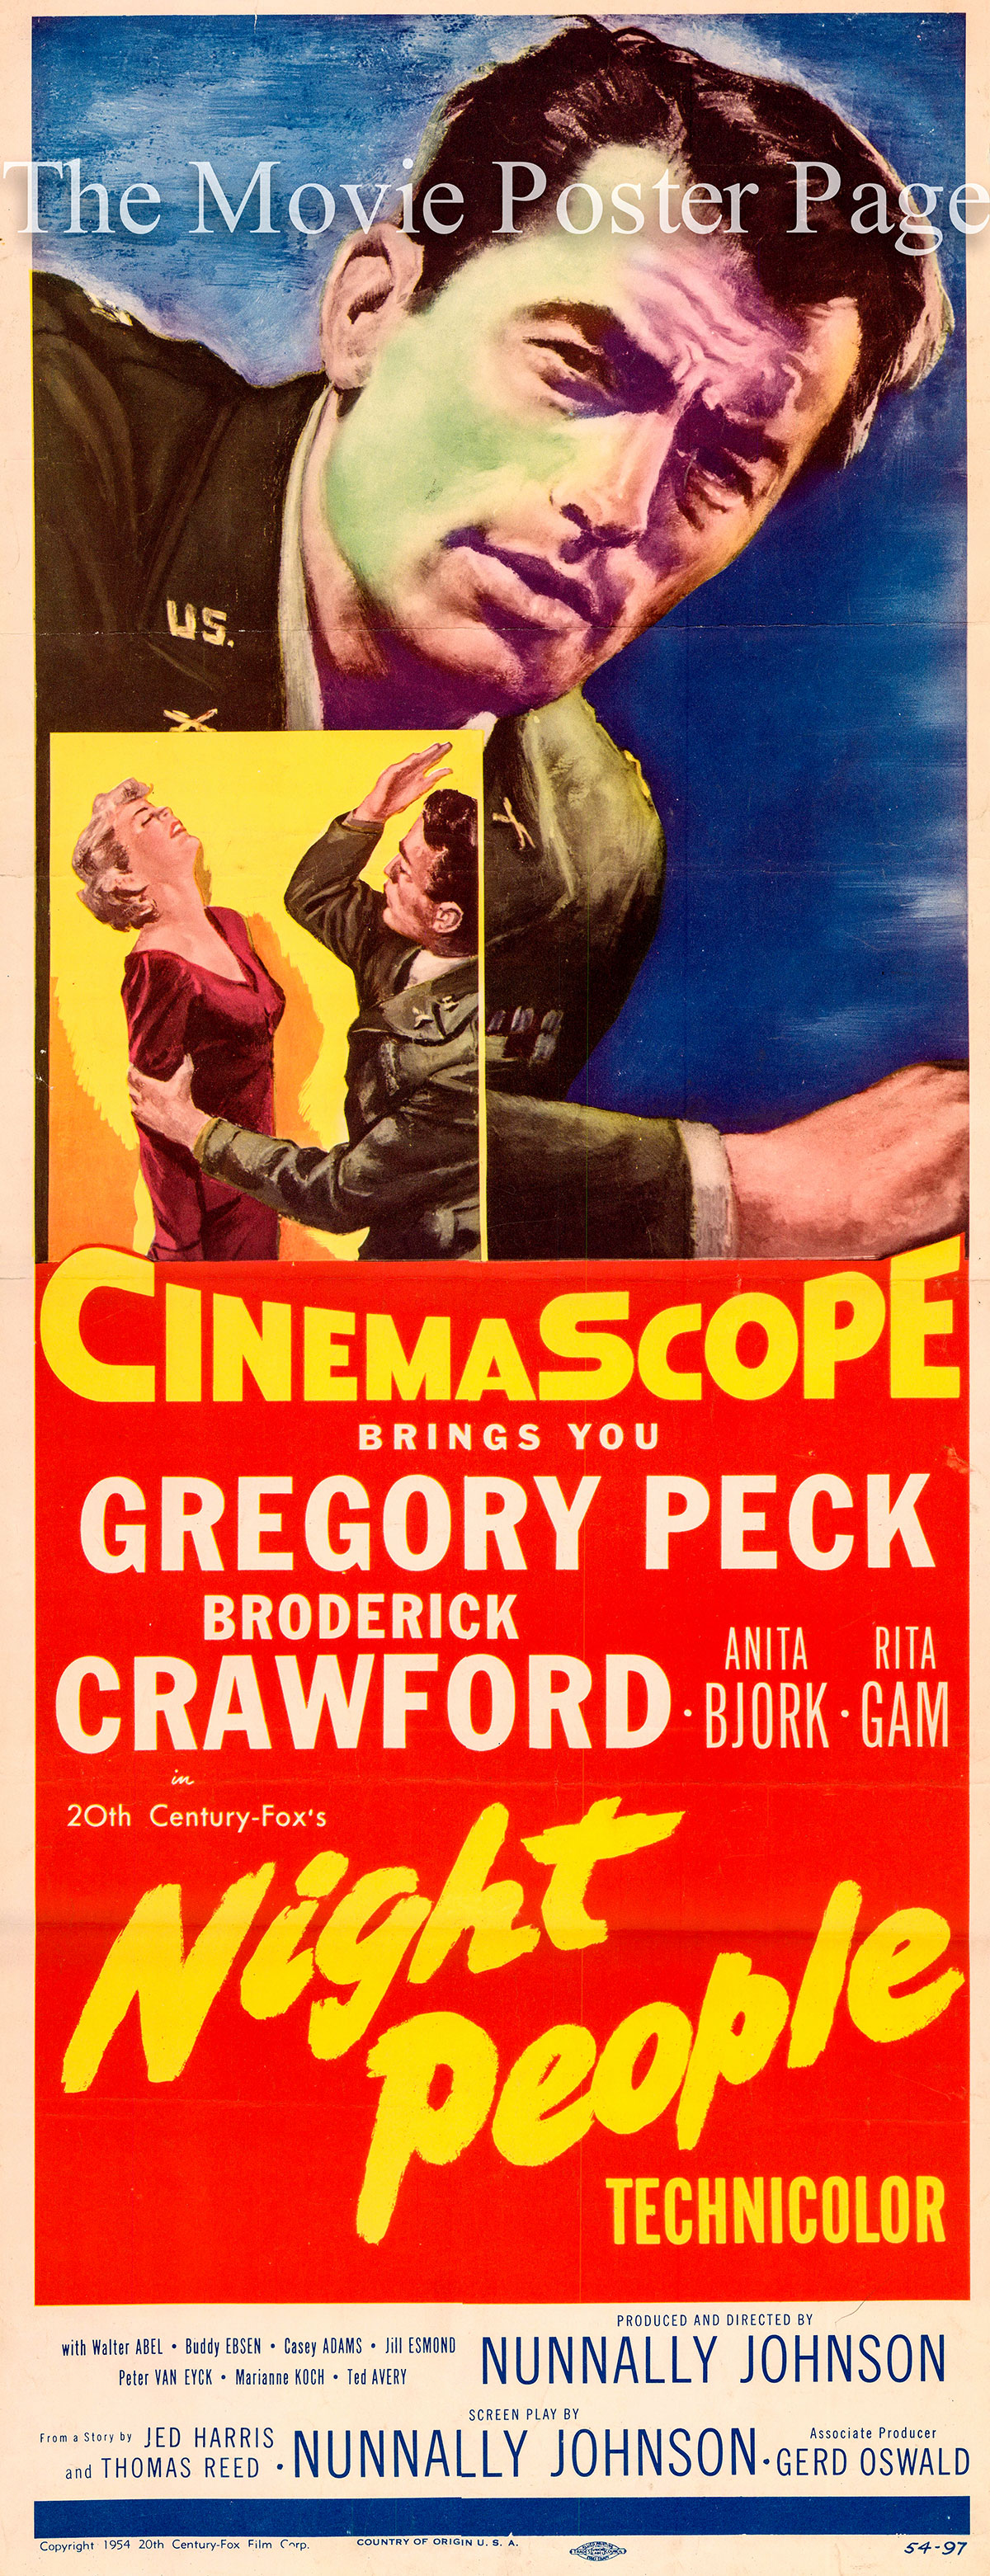 Pictured is a US insert promotional poster for the 1954 Nunnally Johnson film Night People starring Gregory Peck.